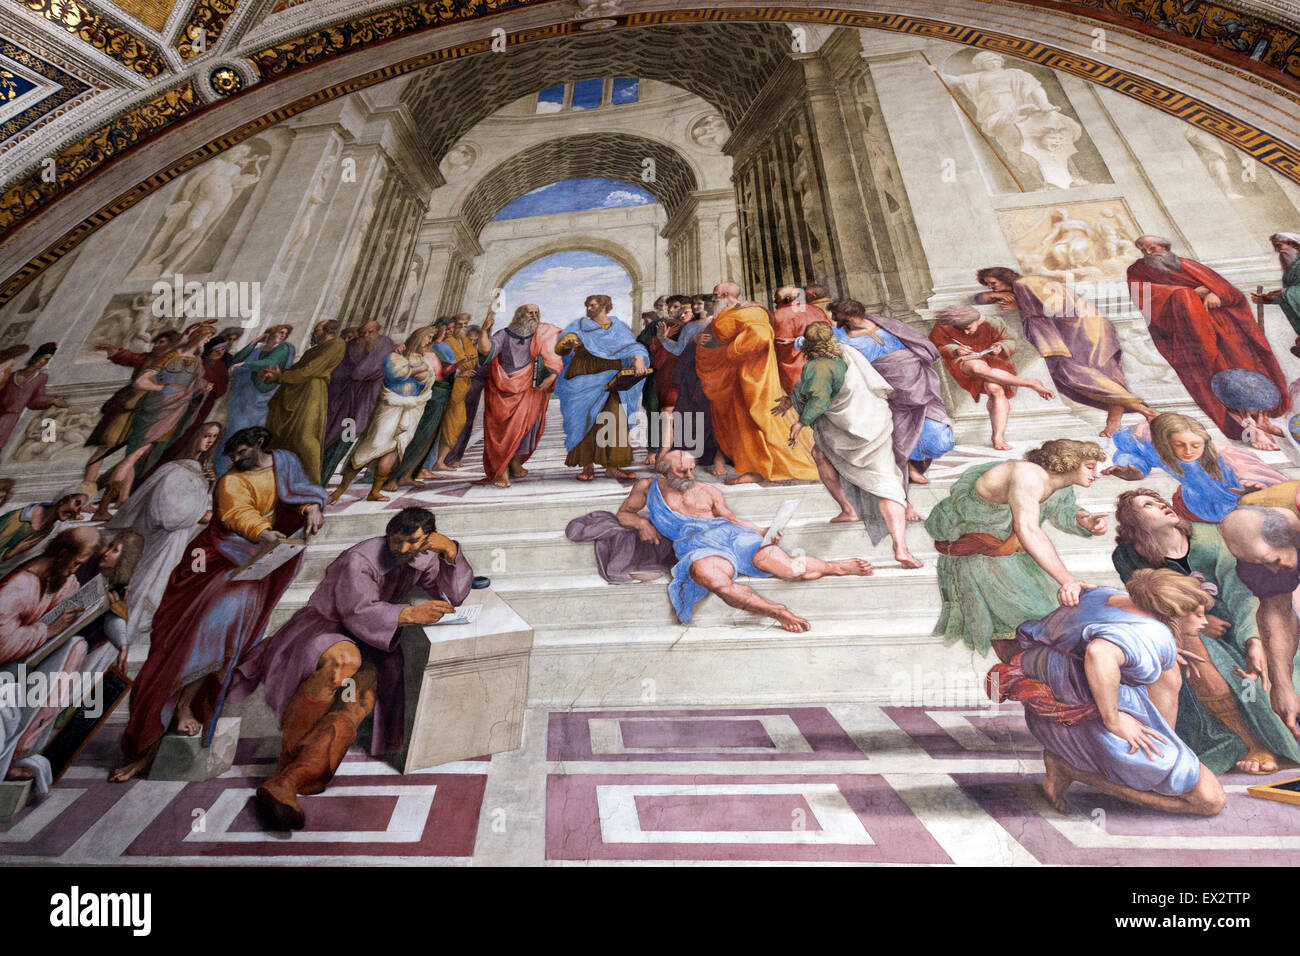 School Of Athens Or Scuola Di Atene Is One The Most Famous Frescoes By Italian Renaissance Artist Raphael